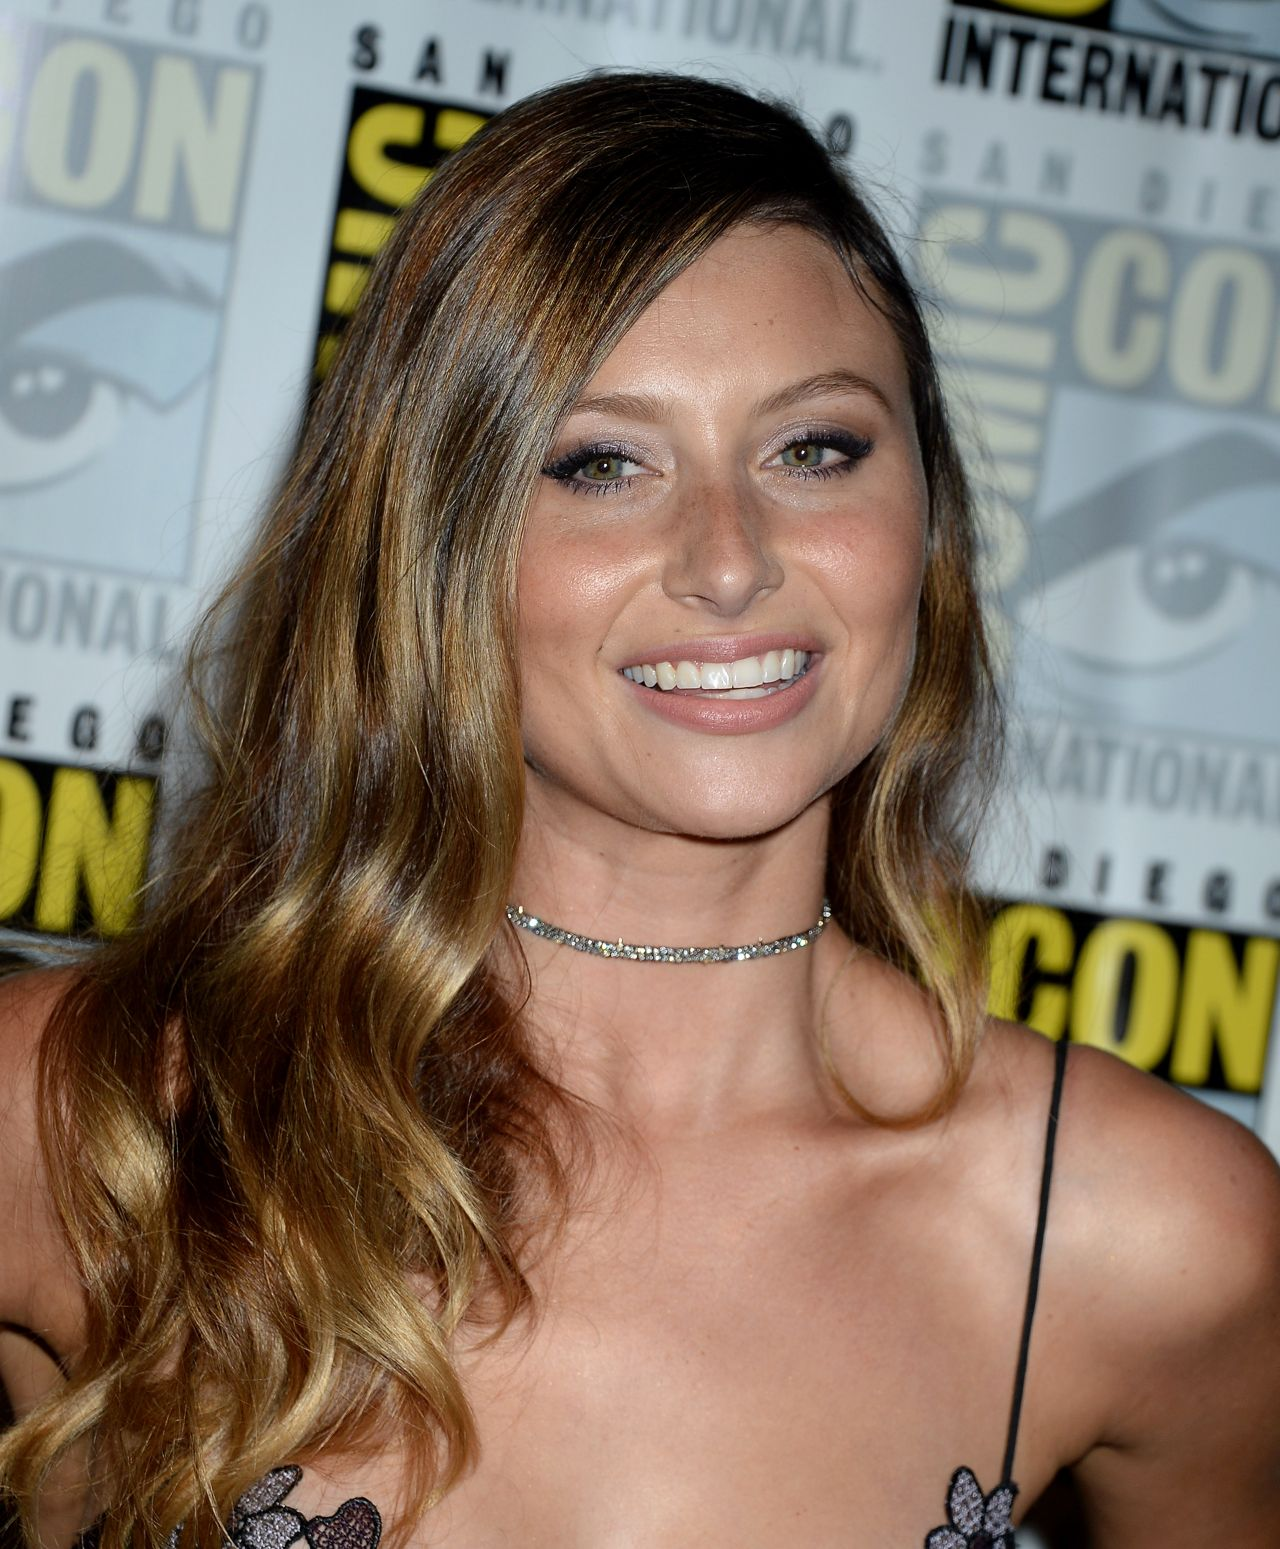 aly michalka fansitealy michalka interview, aly michalka brand new day, aly michalka tca 2017, aly michalka site, aly michalka 2016, aly michalka vk, aly michalka songs, aly michalka izombie, aly michalka fansite, aly michalka aj, aly michalka instagram, aly michalka gif tumblr, aly michalka wikipedia, aly michalka someone to fall back on, aly michalka surgery, aly michalka wild horses